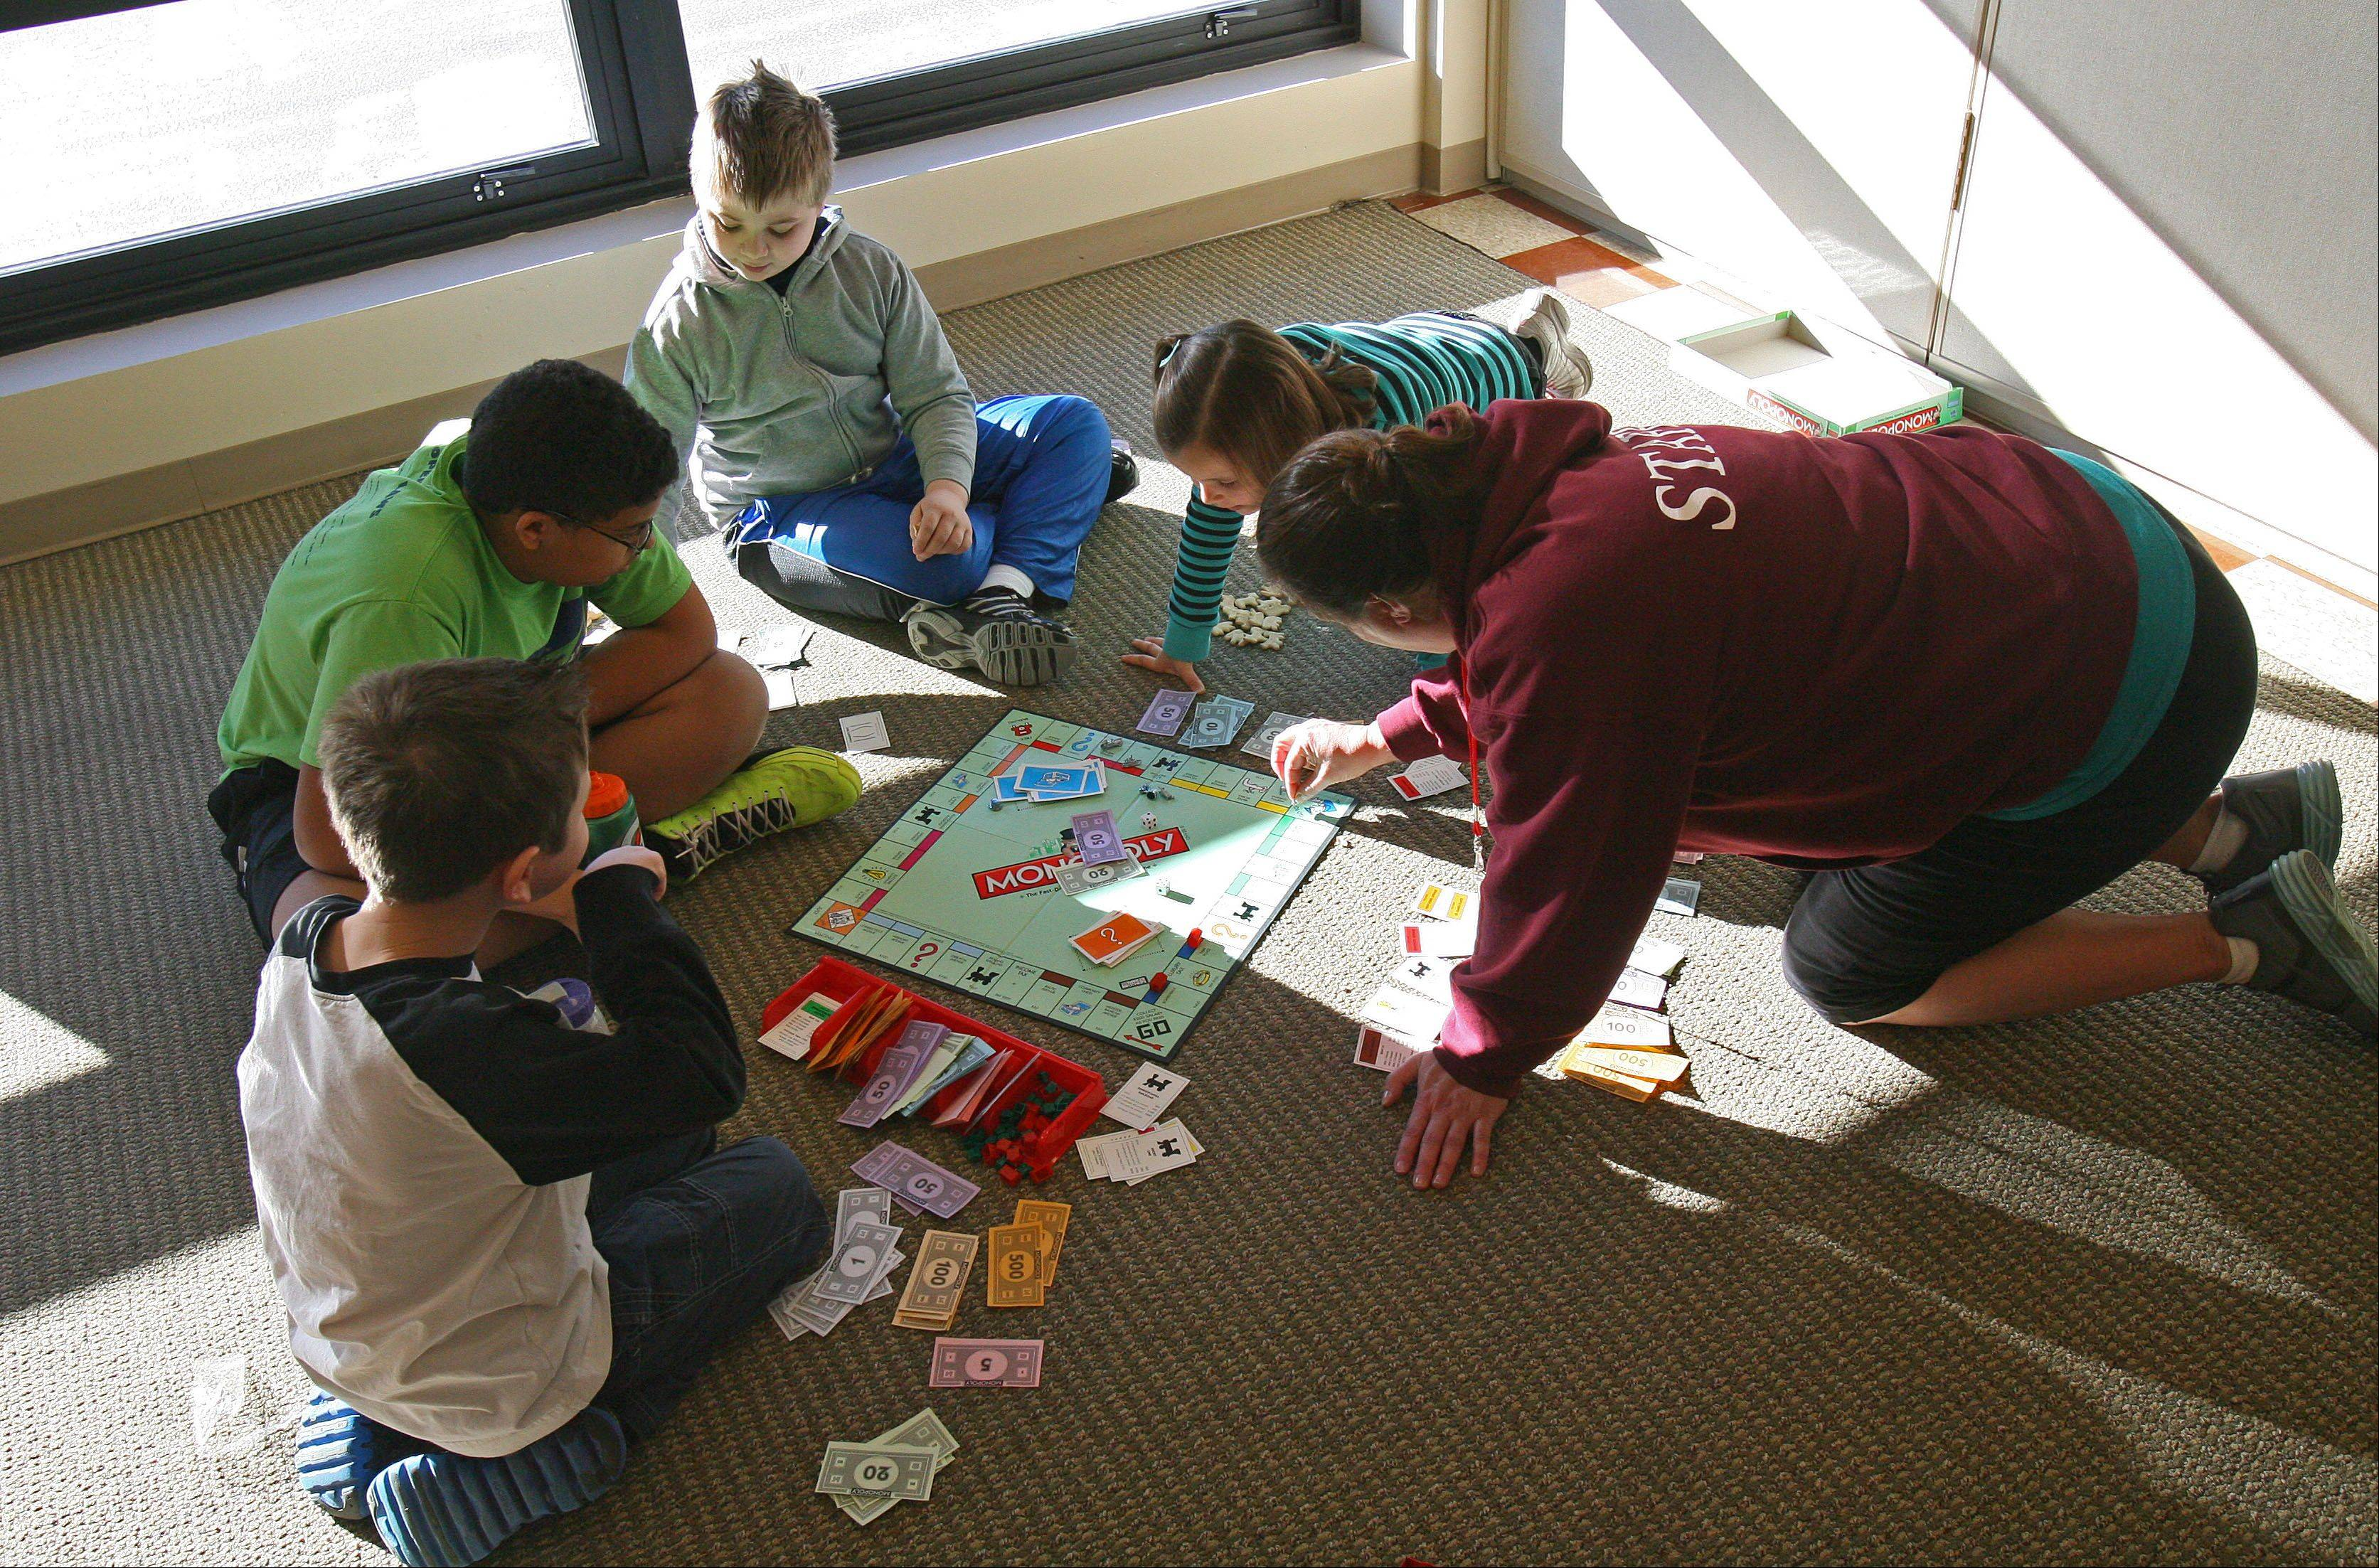 Park District staff member Lynn Wells plays monopoly with kids attending Strike Camp at the Grayslake Park District Recreation Center Thursday morning.